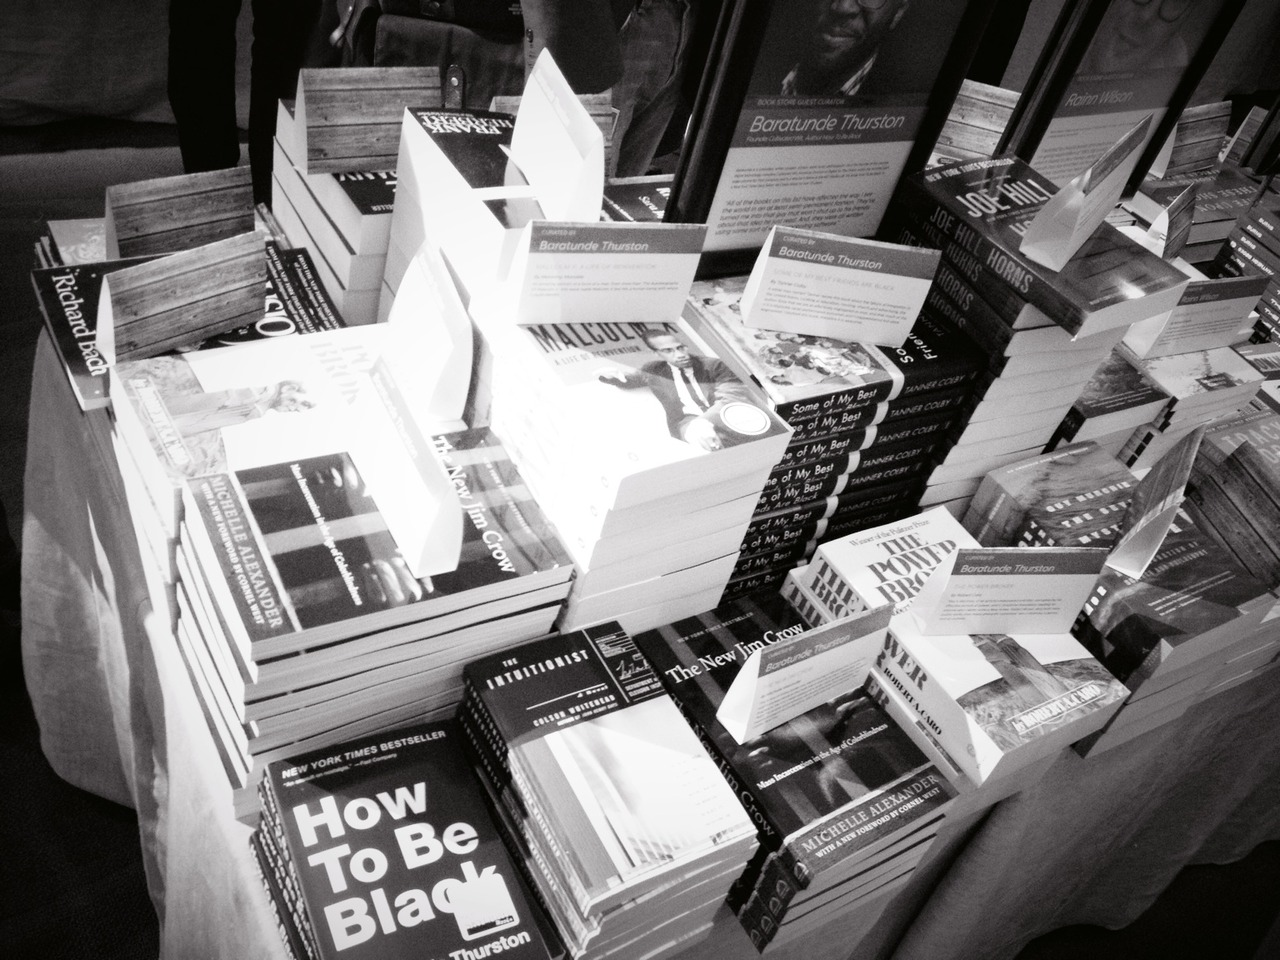 Signed copies of #HowToBeBlack are at the #TED2013 bookstore. Get them now. #bookriots – View on Path.